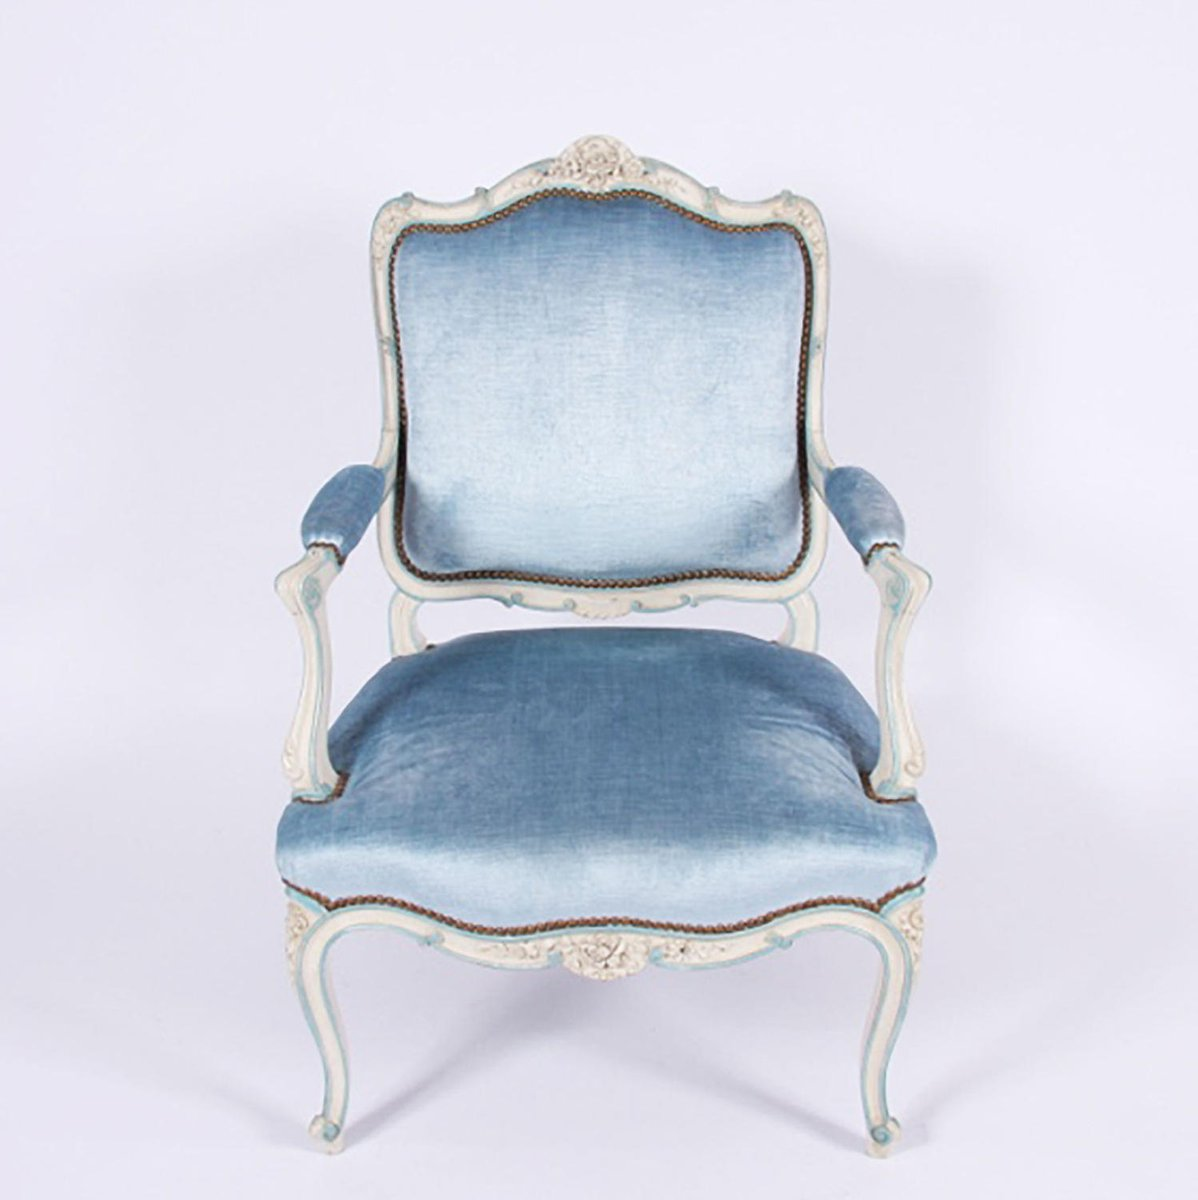 Antique French Salon Chair - Antique French Salon Chair For Sale At Pamono